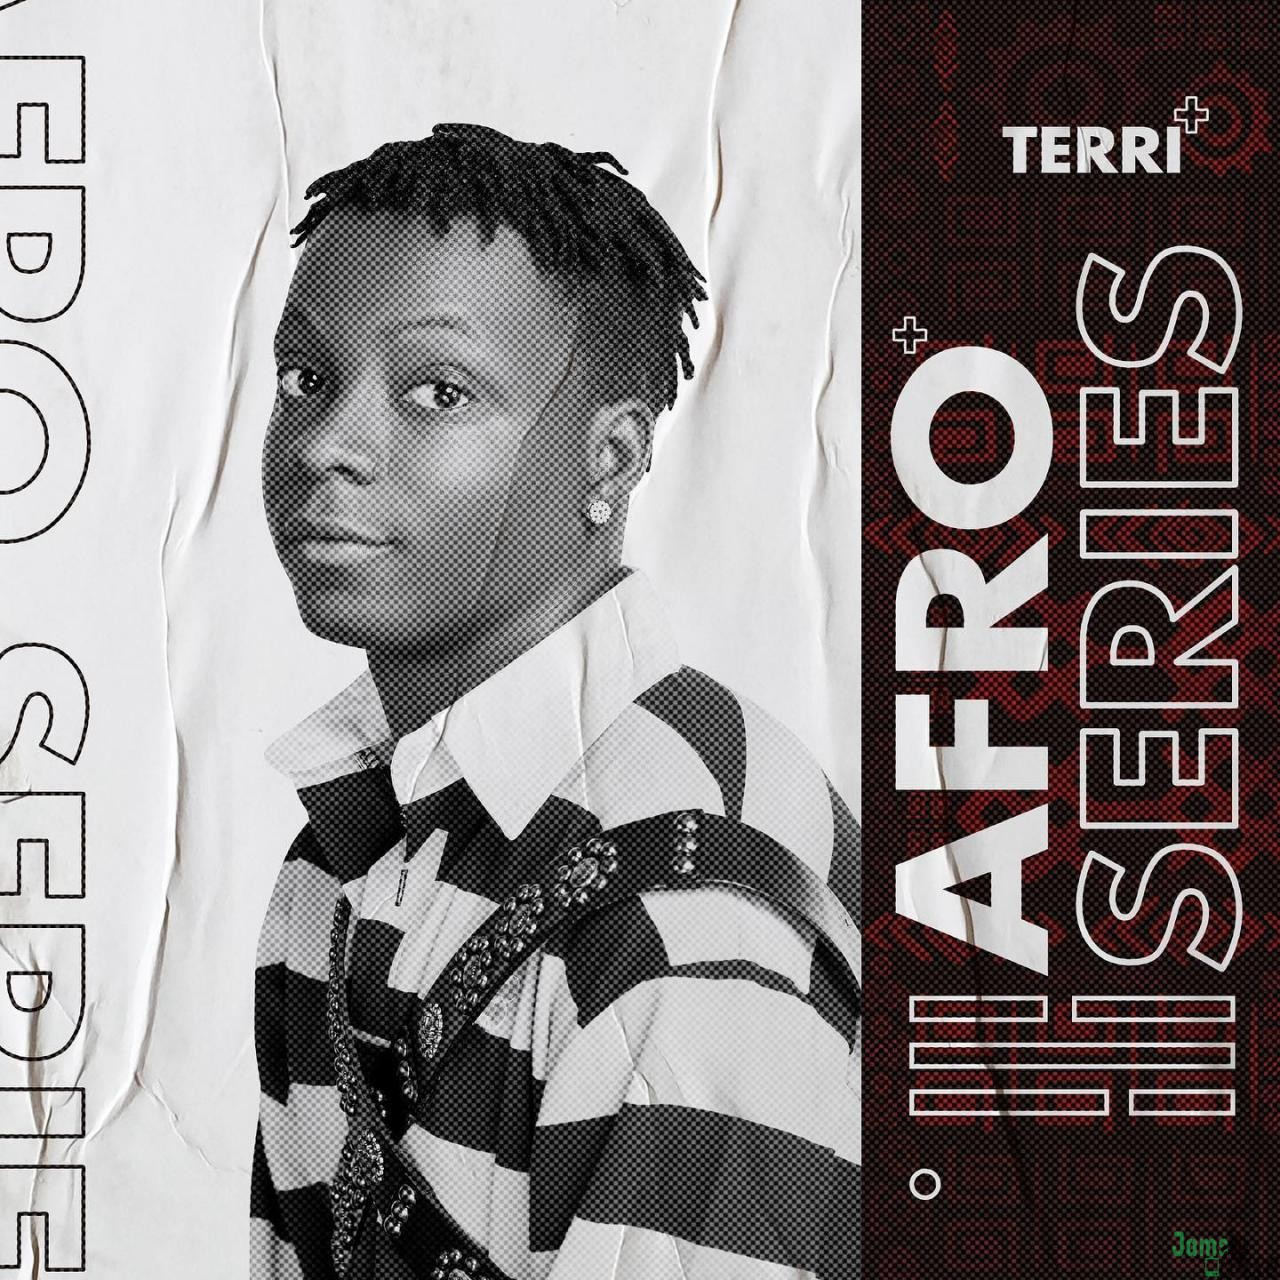 Download Terri – Doo